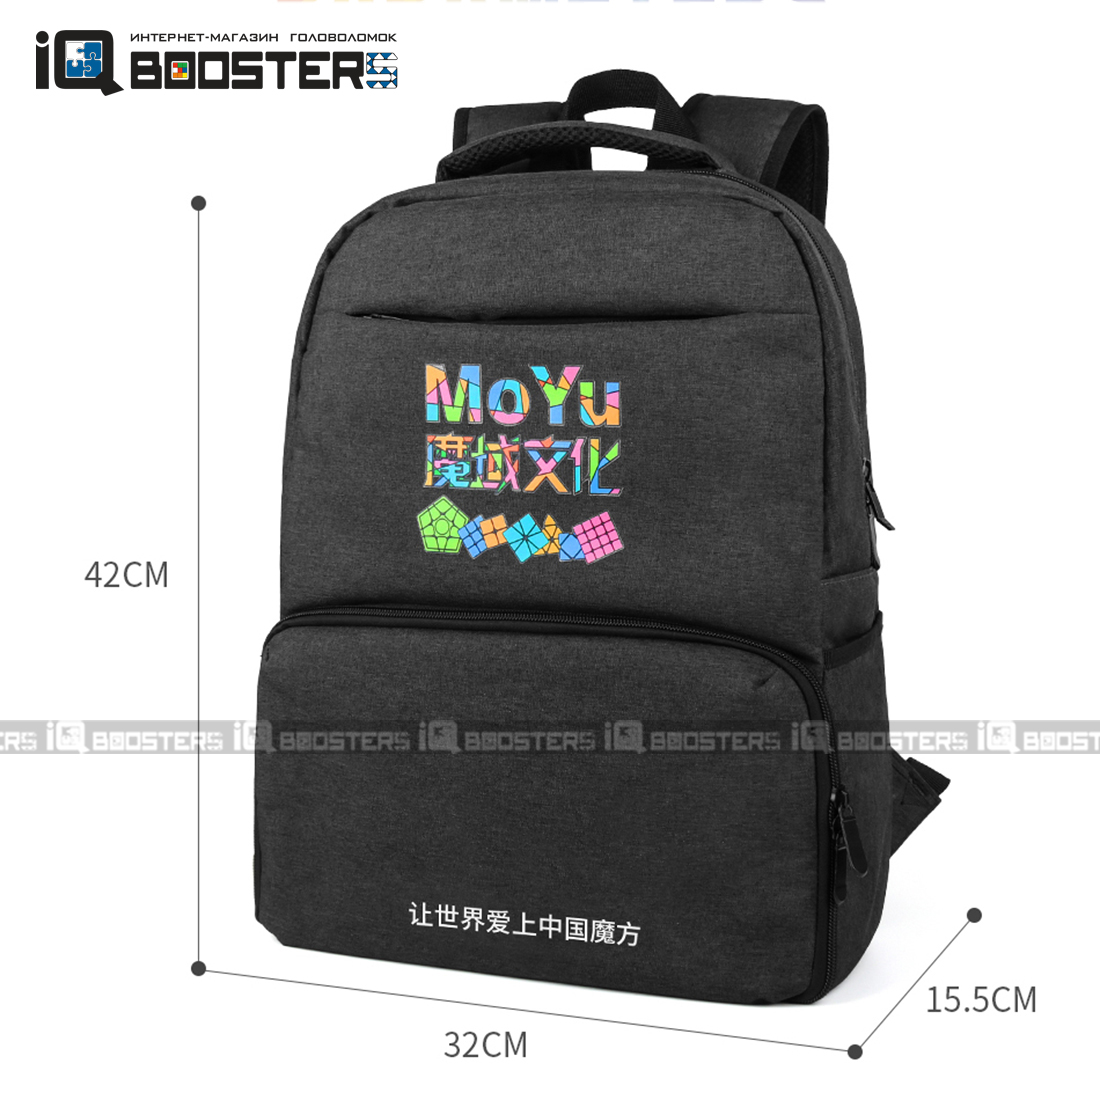 moyu_backpack_04